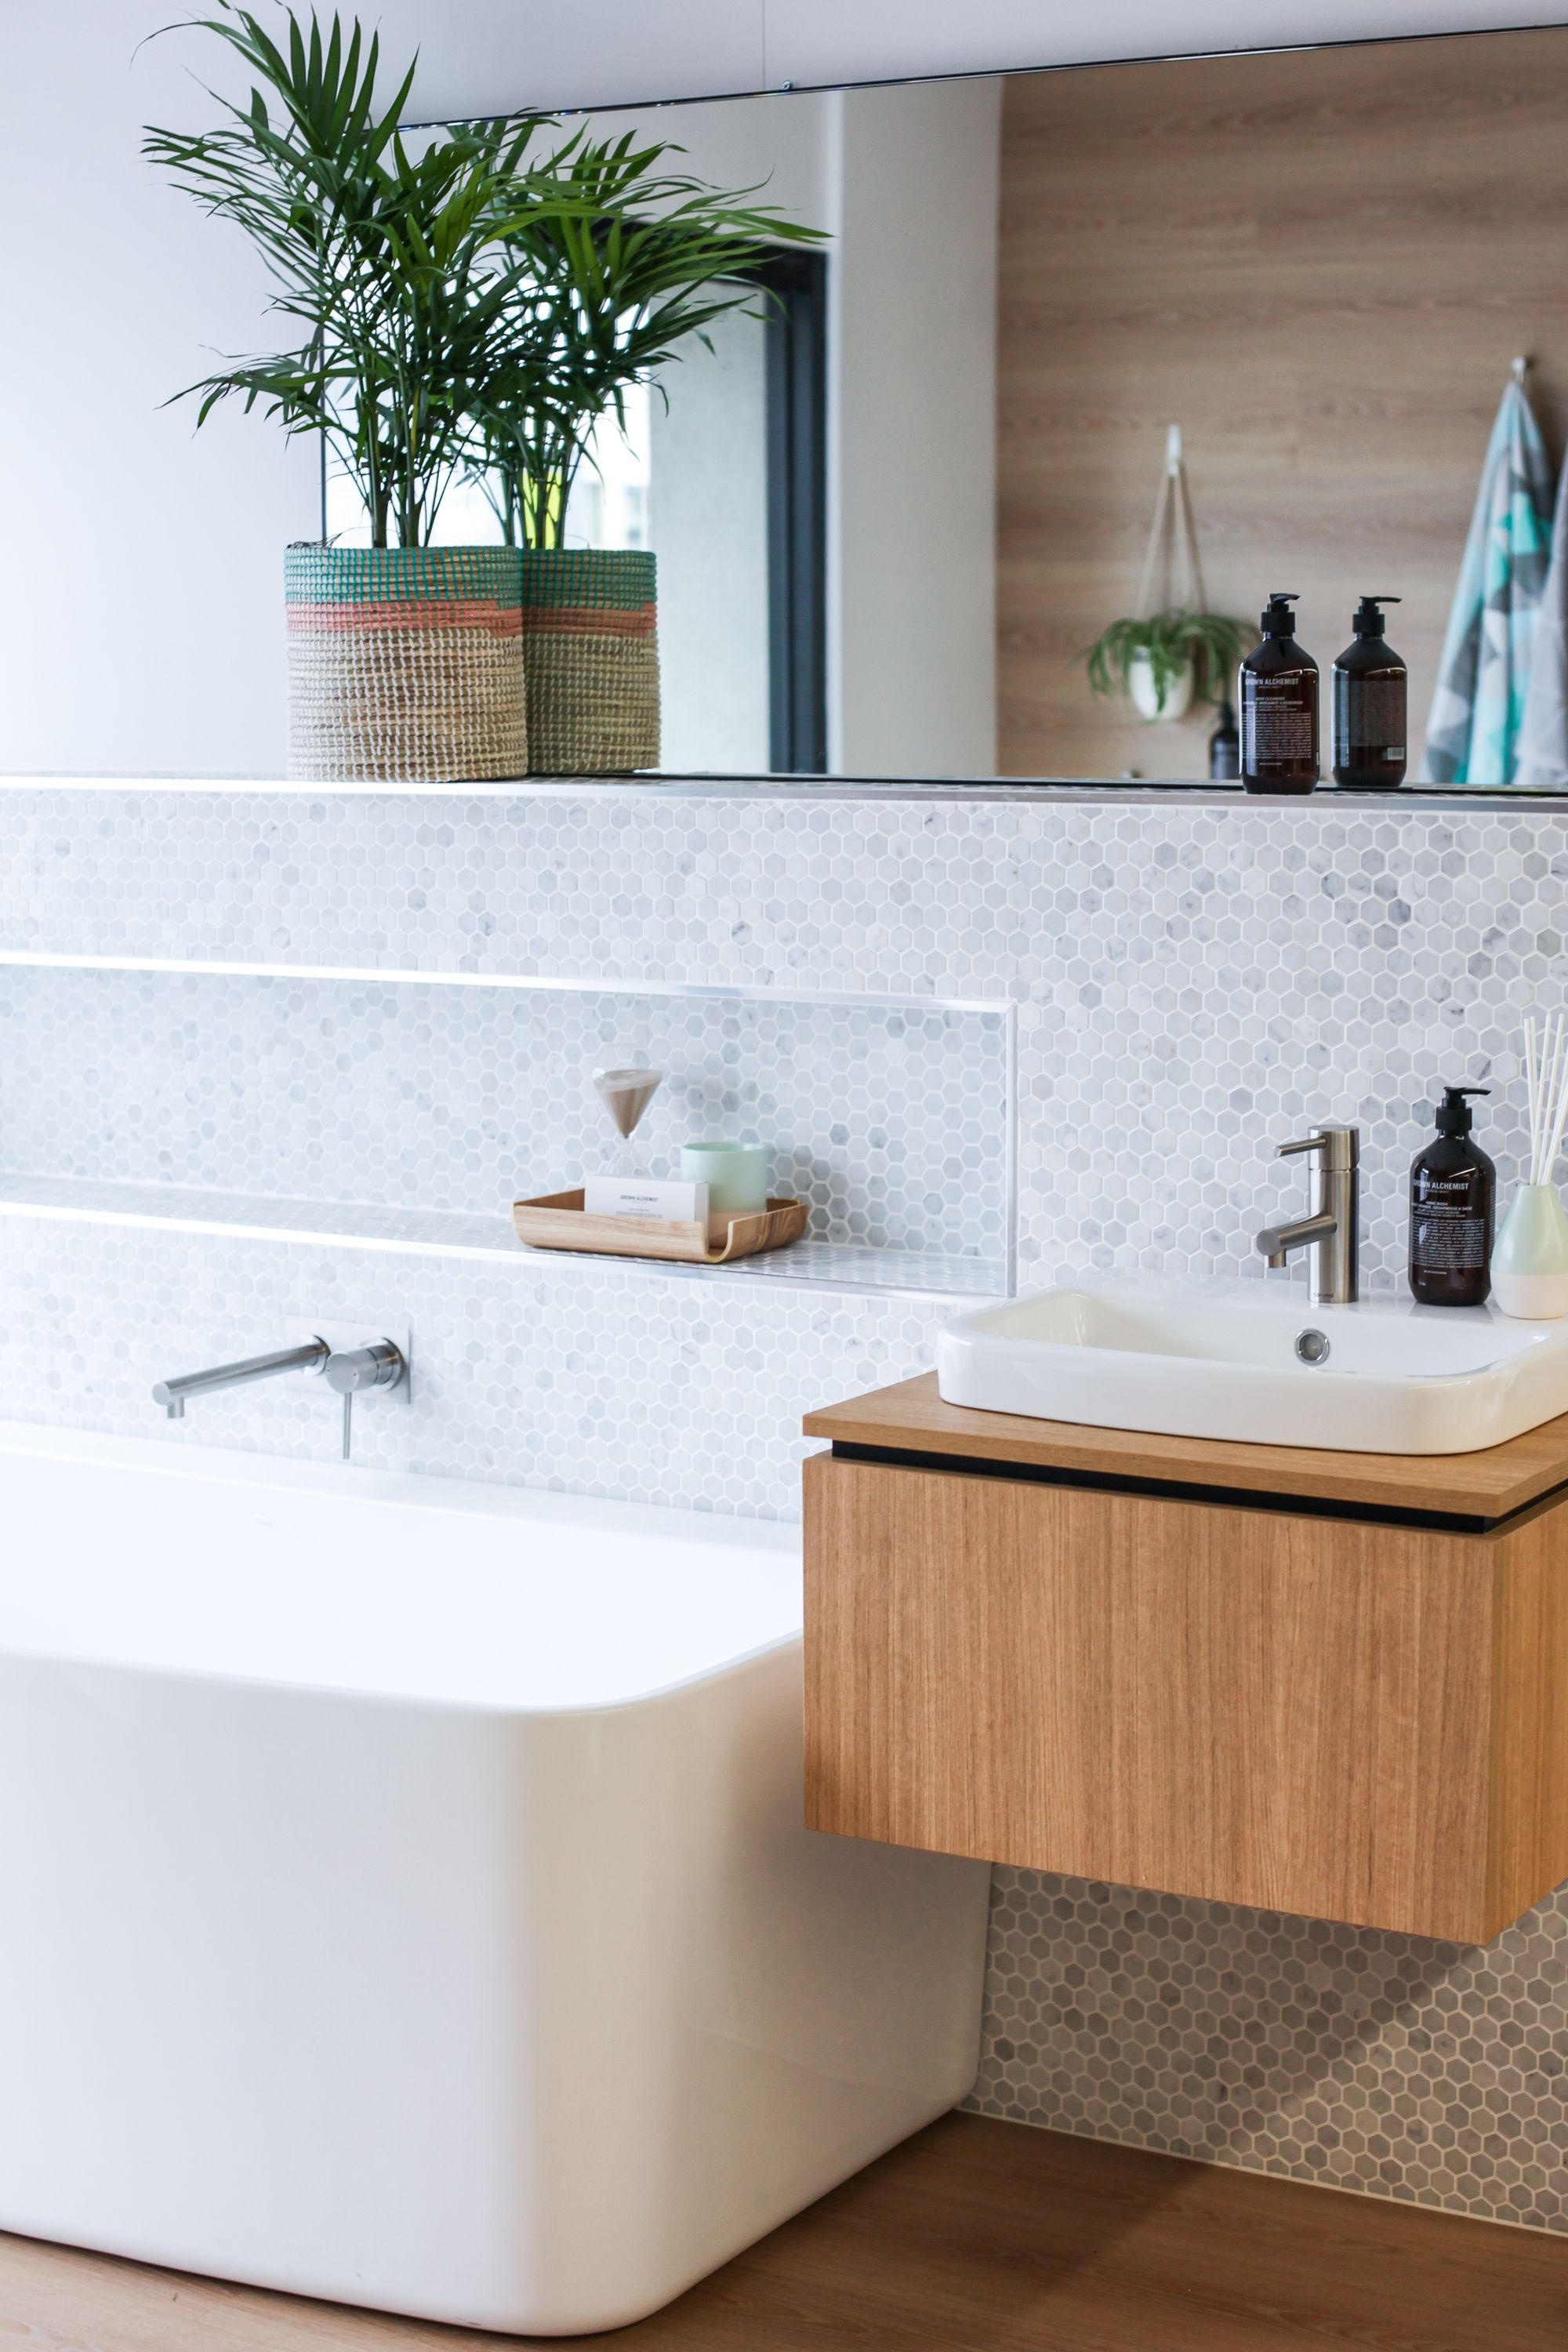 Superior Featuring The Caroma Urbane Bath And Basin, And Caroma Titan Stainless